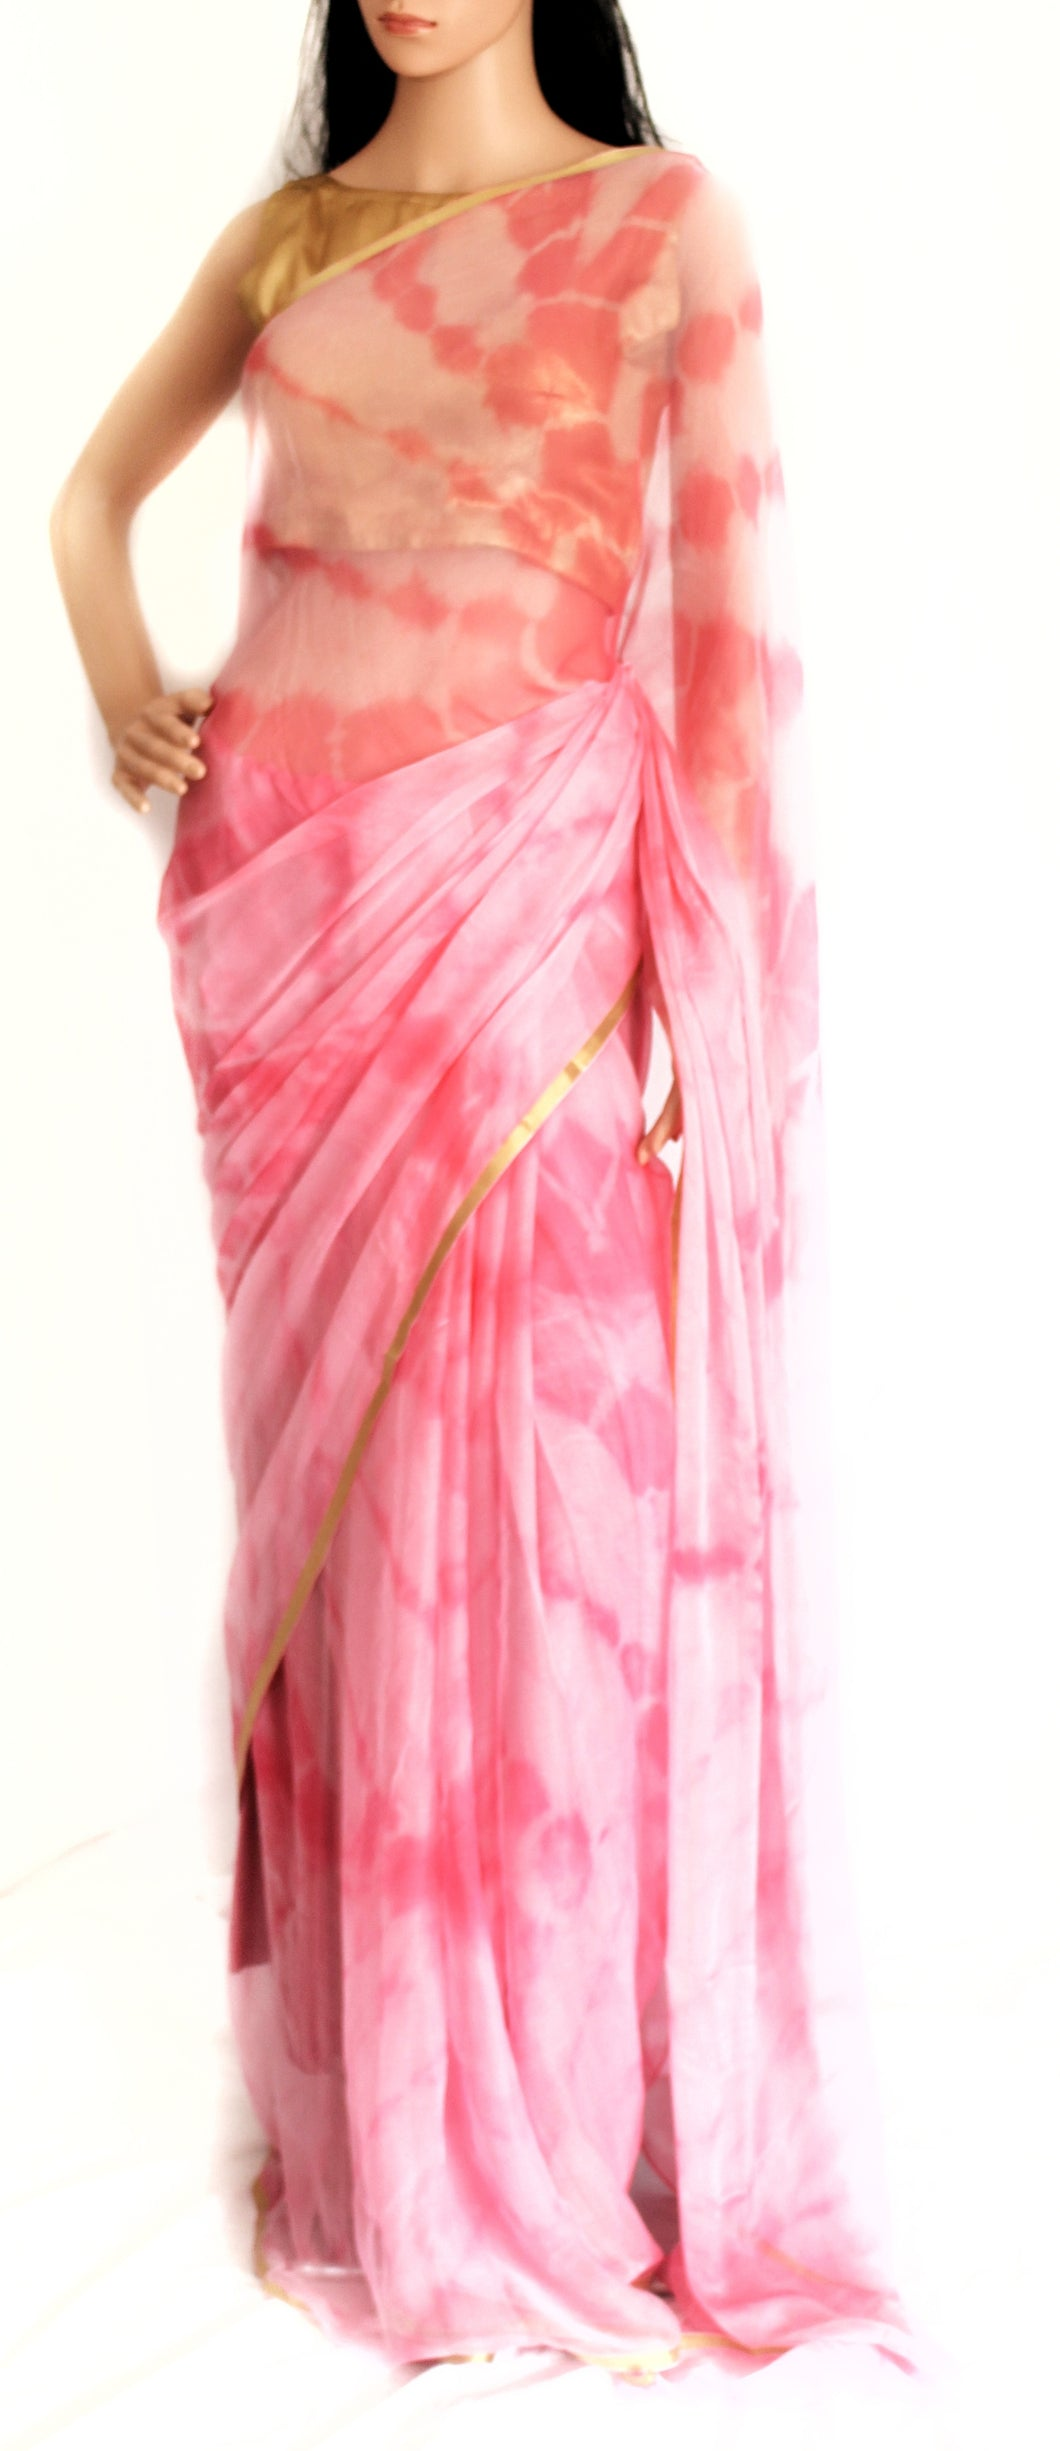 Pure Chiffon Sari  in Pink and White Shade Pattern